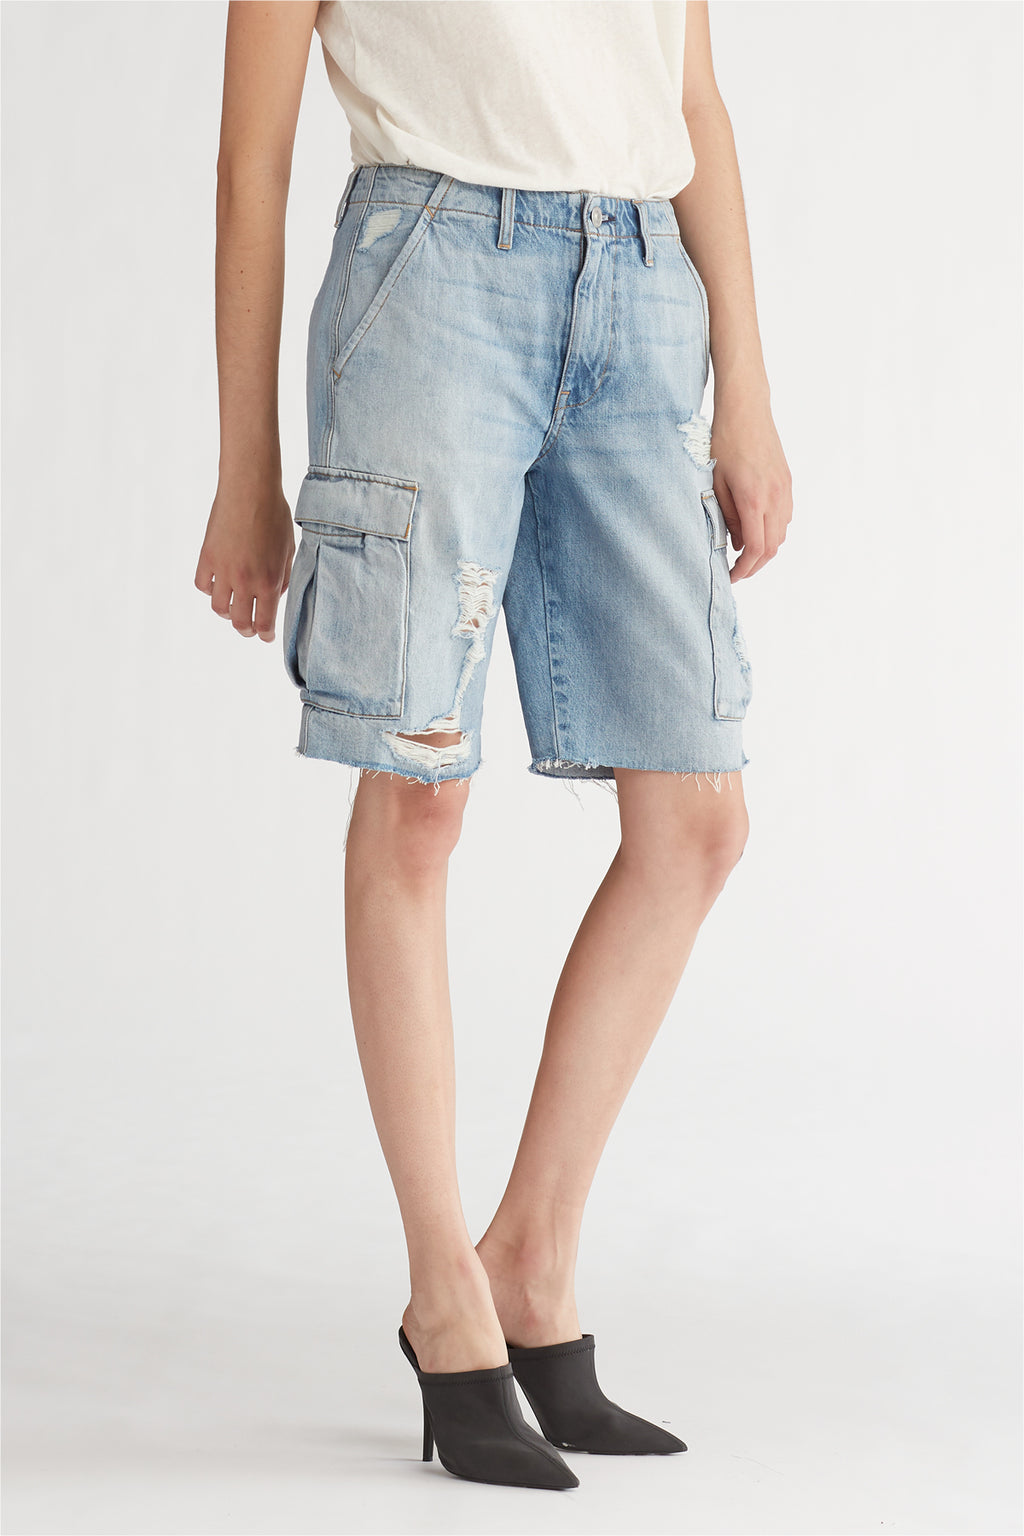 JANE CARGO SHORT - OVERTHROW - Image 2